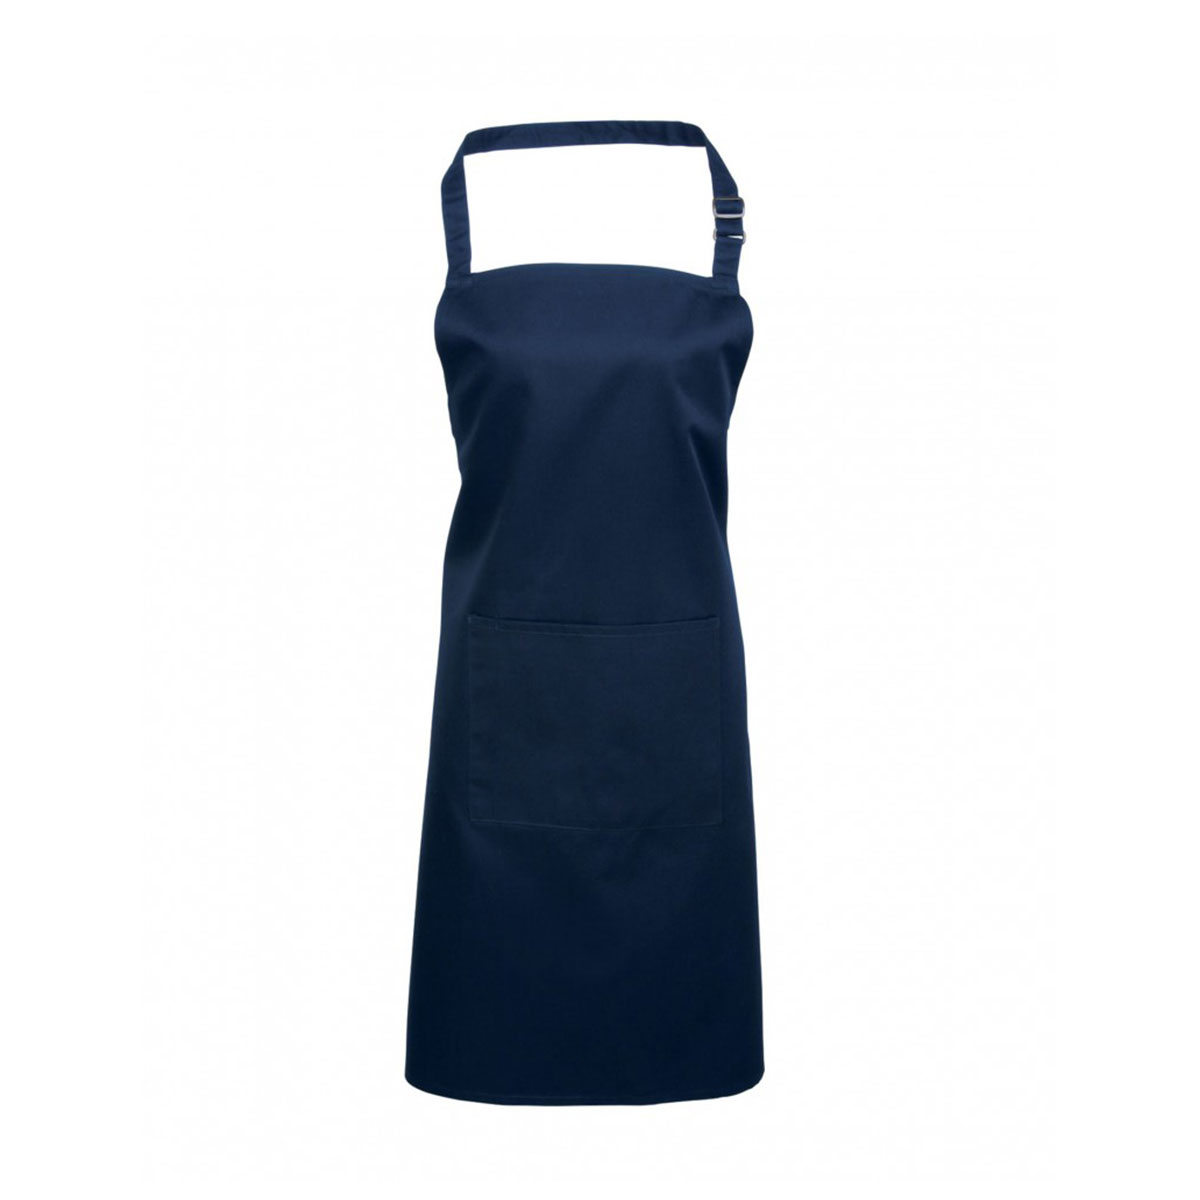 Colours Bib Apron with Pocket - pr154_navy_1